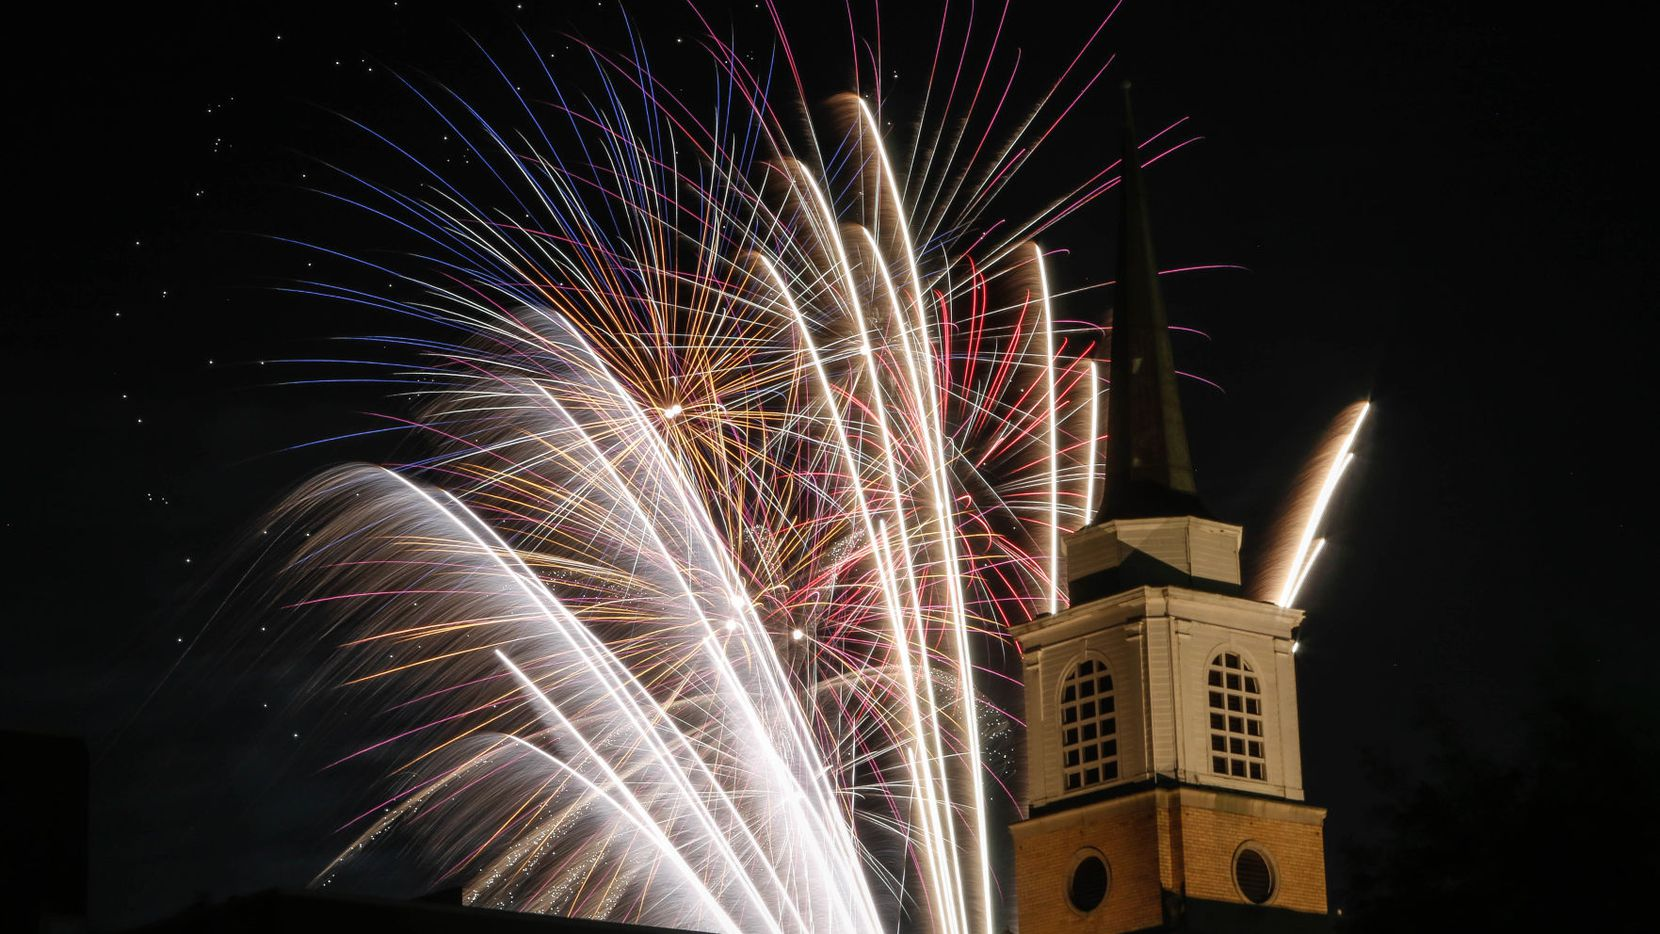 Fireworks illuminate the First Baptist Church Arlington's steeple during a Fourth of July fireworks show in 2019.